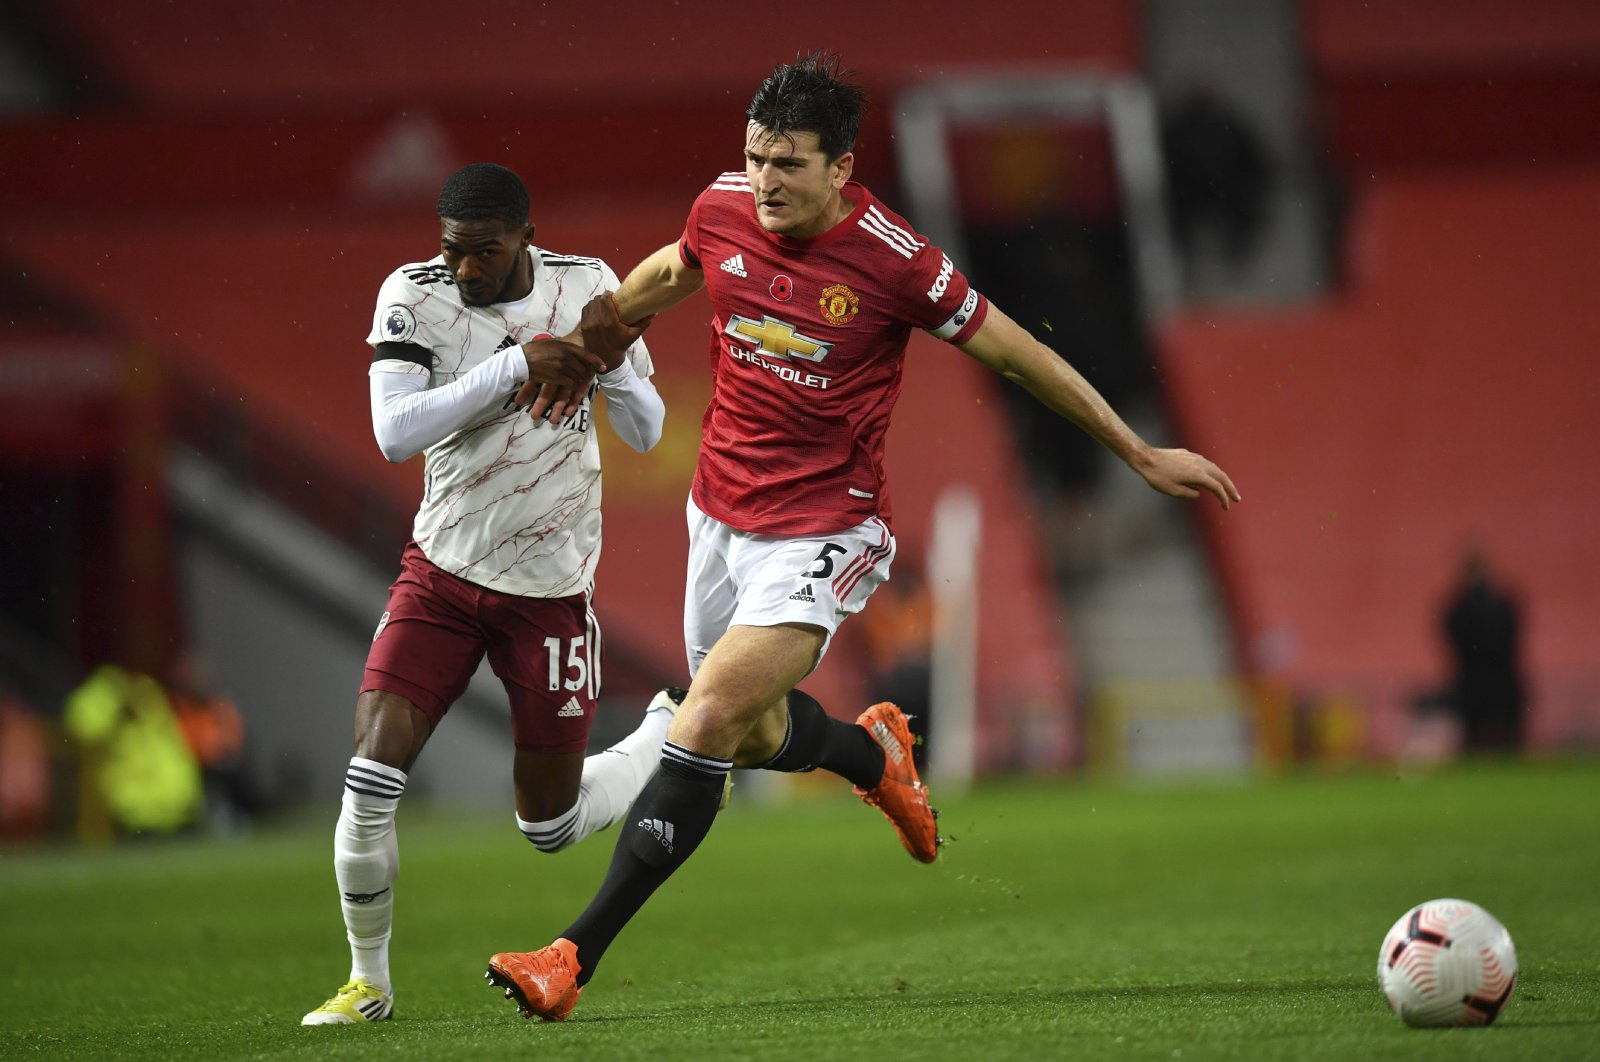 Manchester United's Harry Maguire (R) fights for the ball with Arsenal's Ainsley Maitland-Niles during a Premier League match at the Old Trafford stadium in Manchester, England, Nov. 1, 2020. (AP Photo)